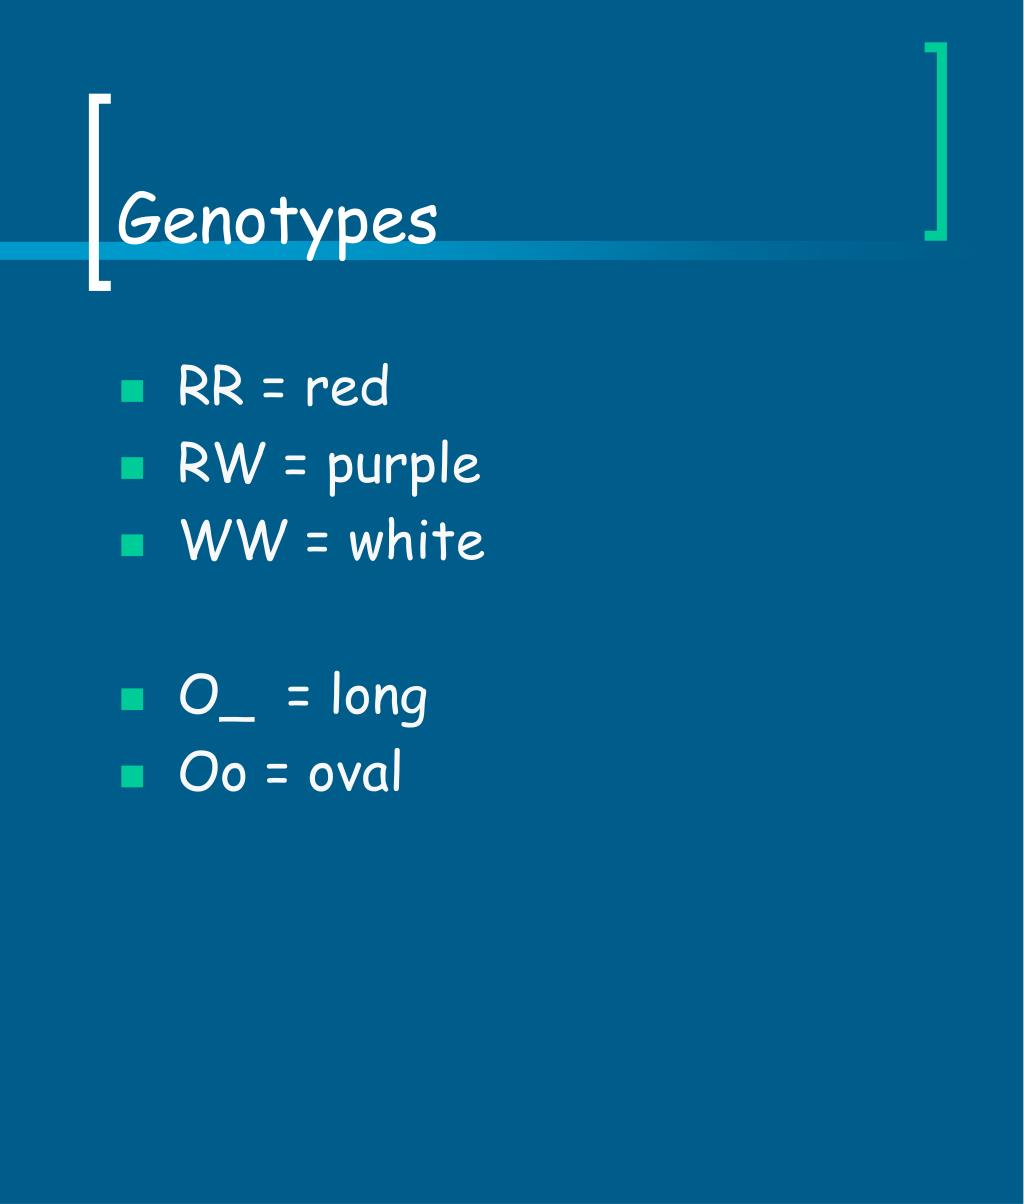 Genotypes